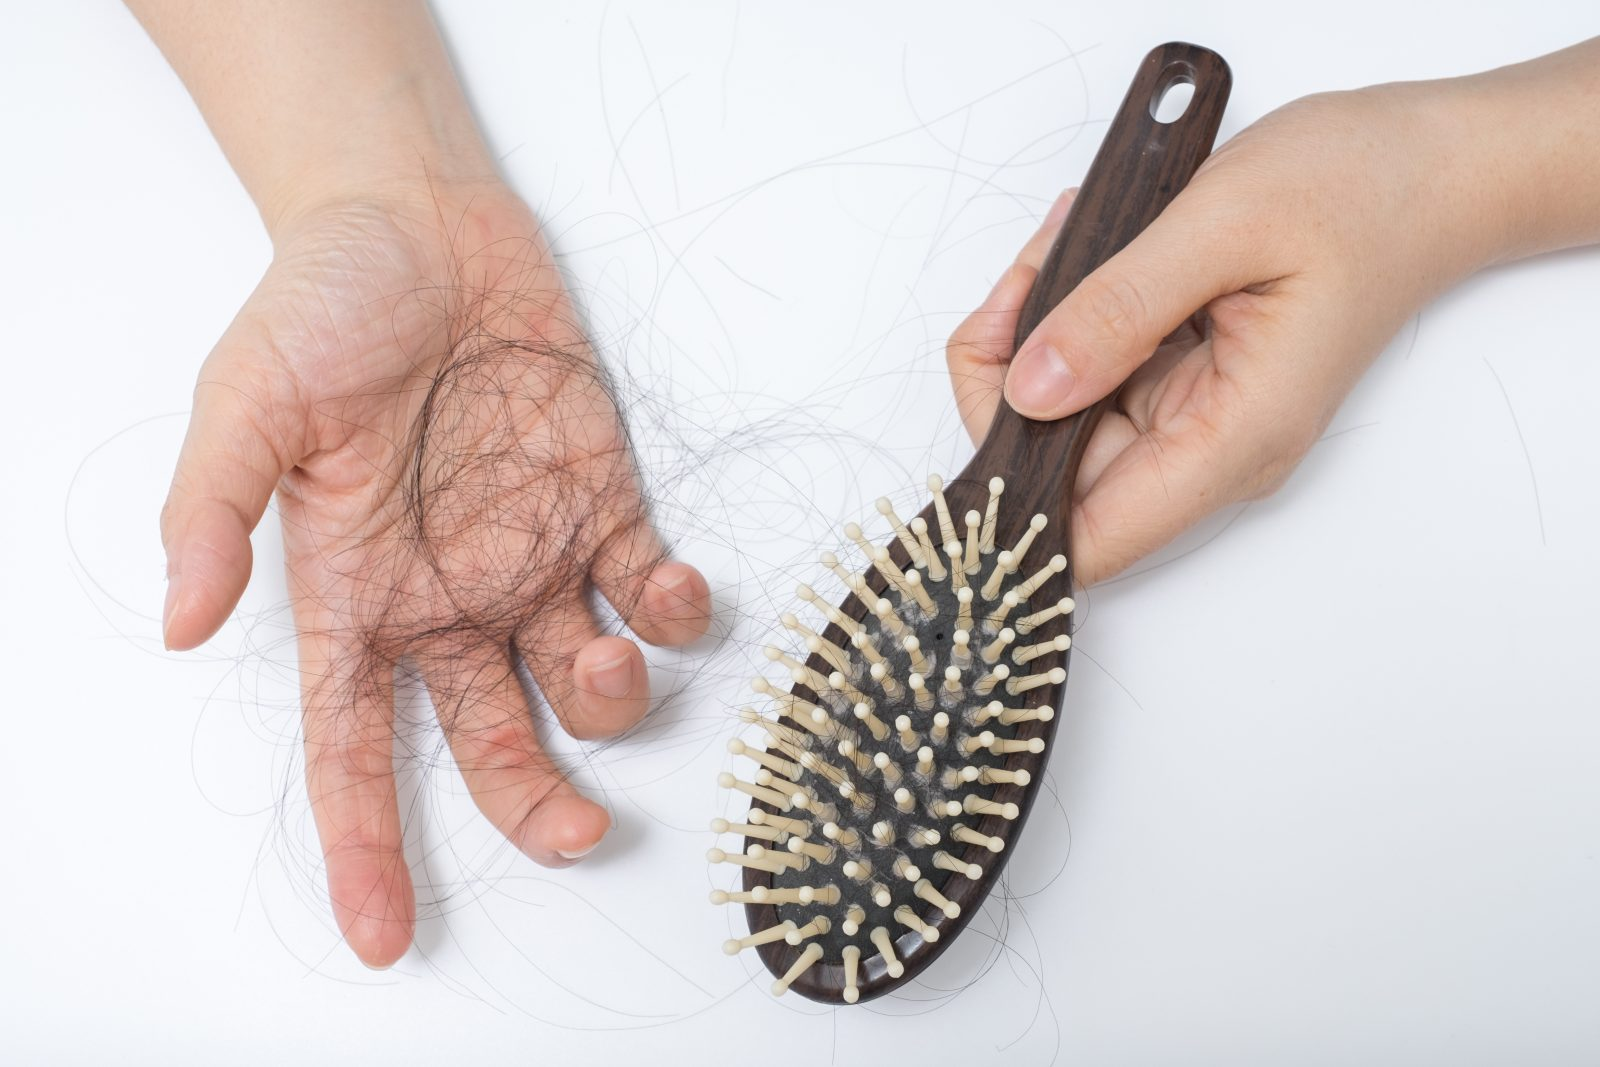 Hair loss in woman hands and loose hair strands in a hair brush.